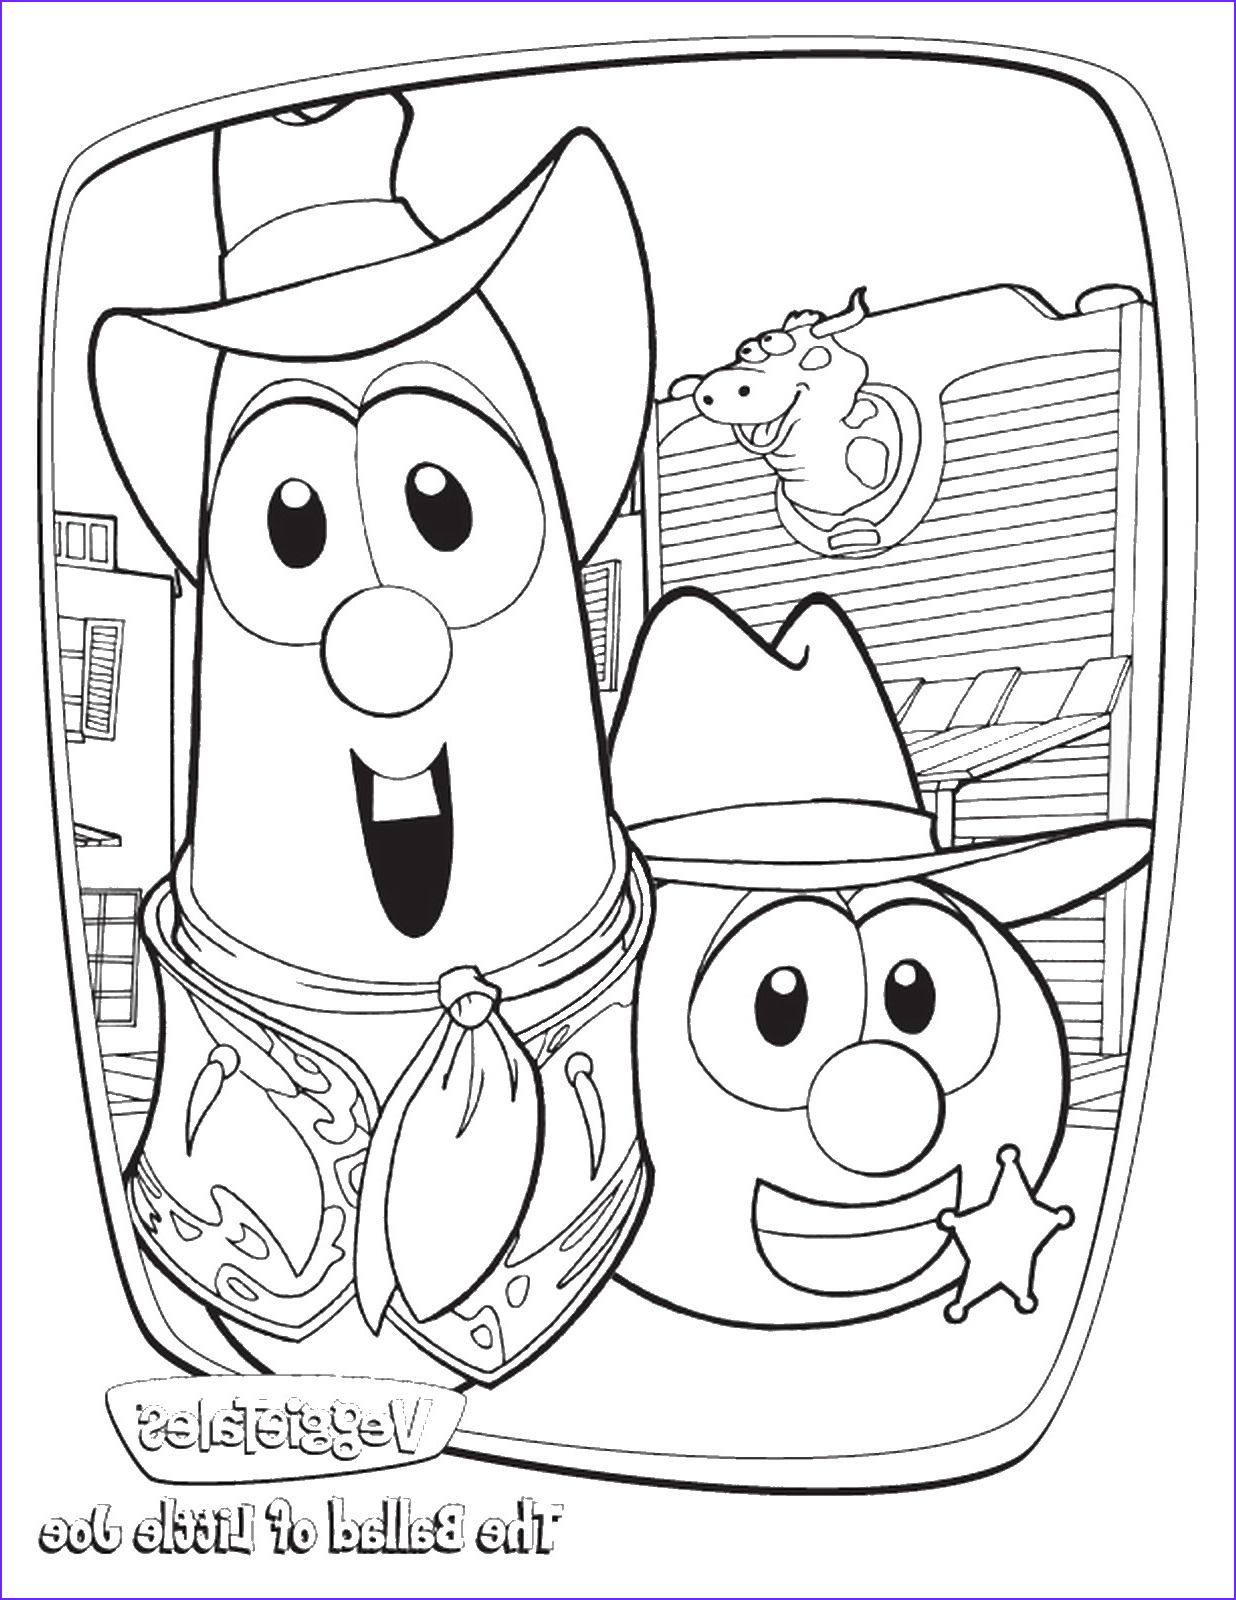 Veggie Tales Coloring Book New Image Veggie Tales Coloring Pages